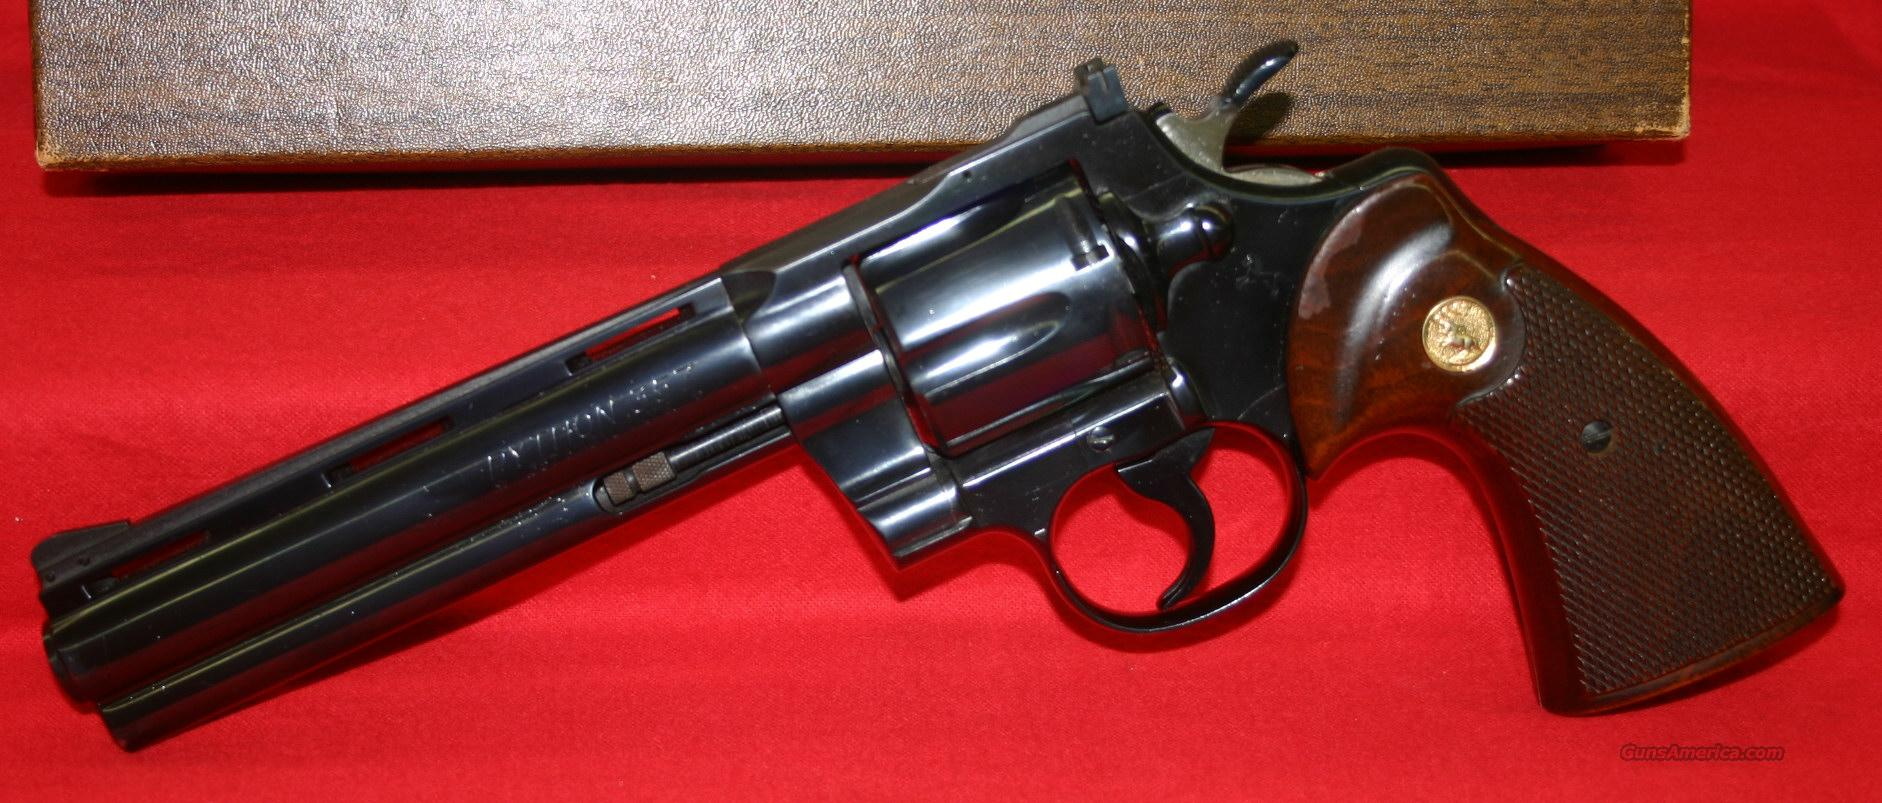 "Colt Python 6"" Blue in Box  Guns > Pistols > Colt Double Action Revolvers- Modern"